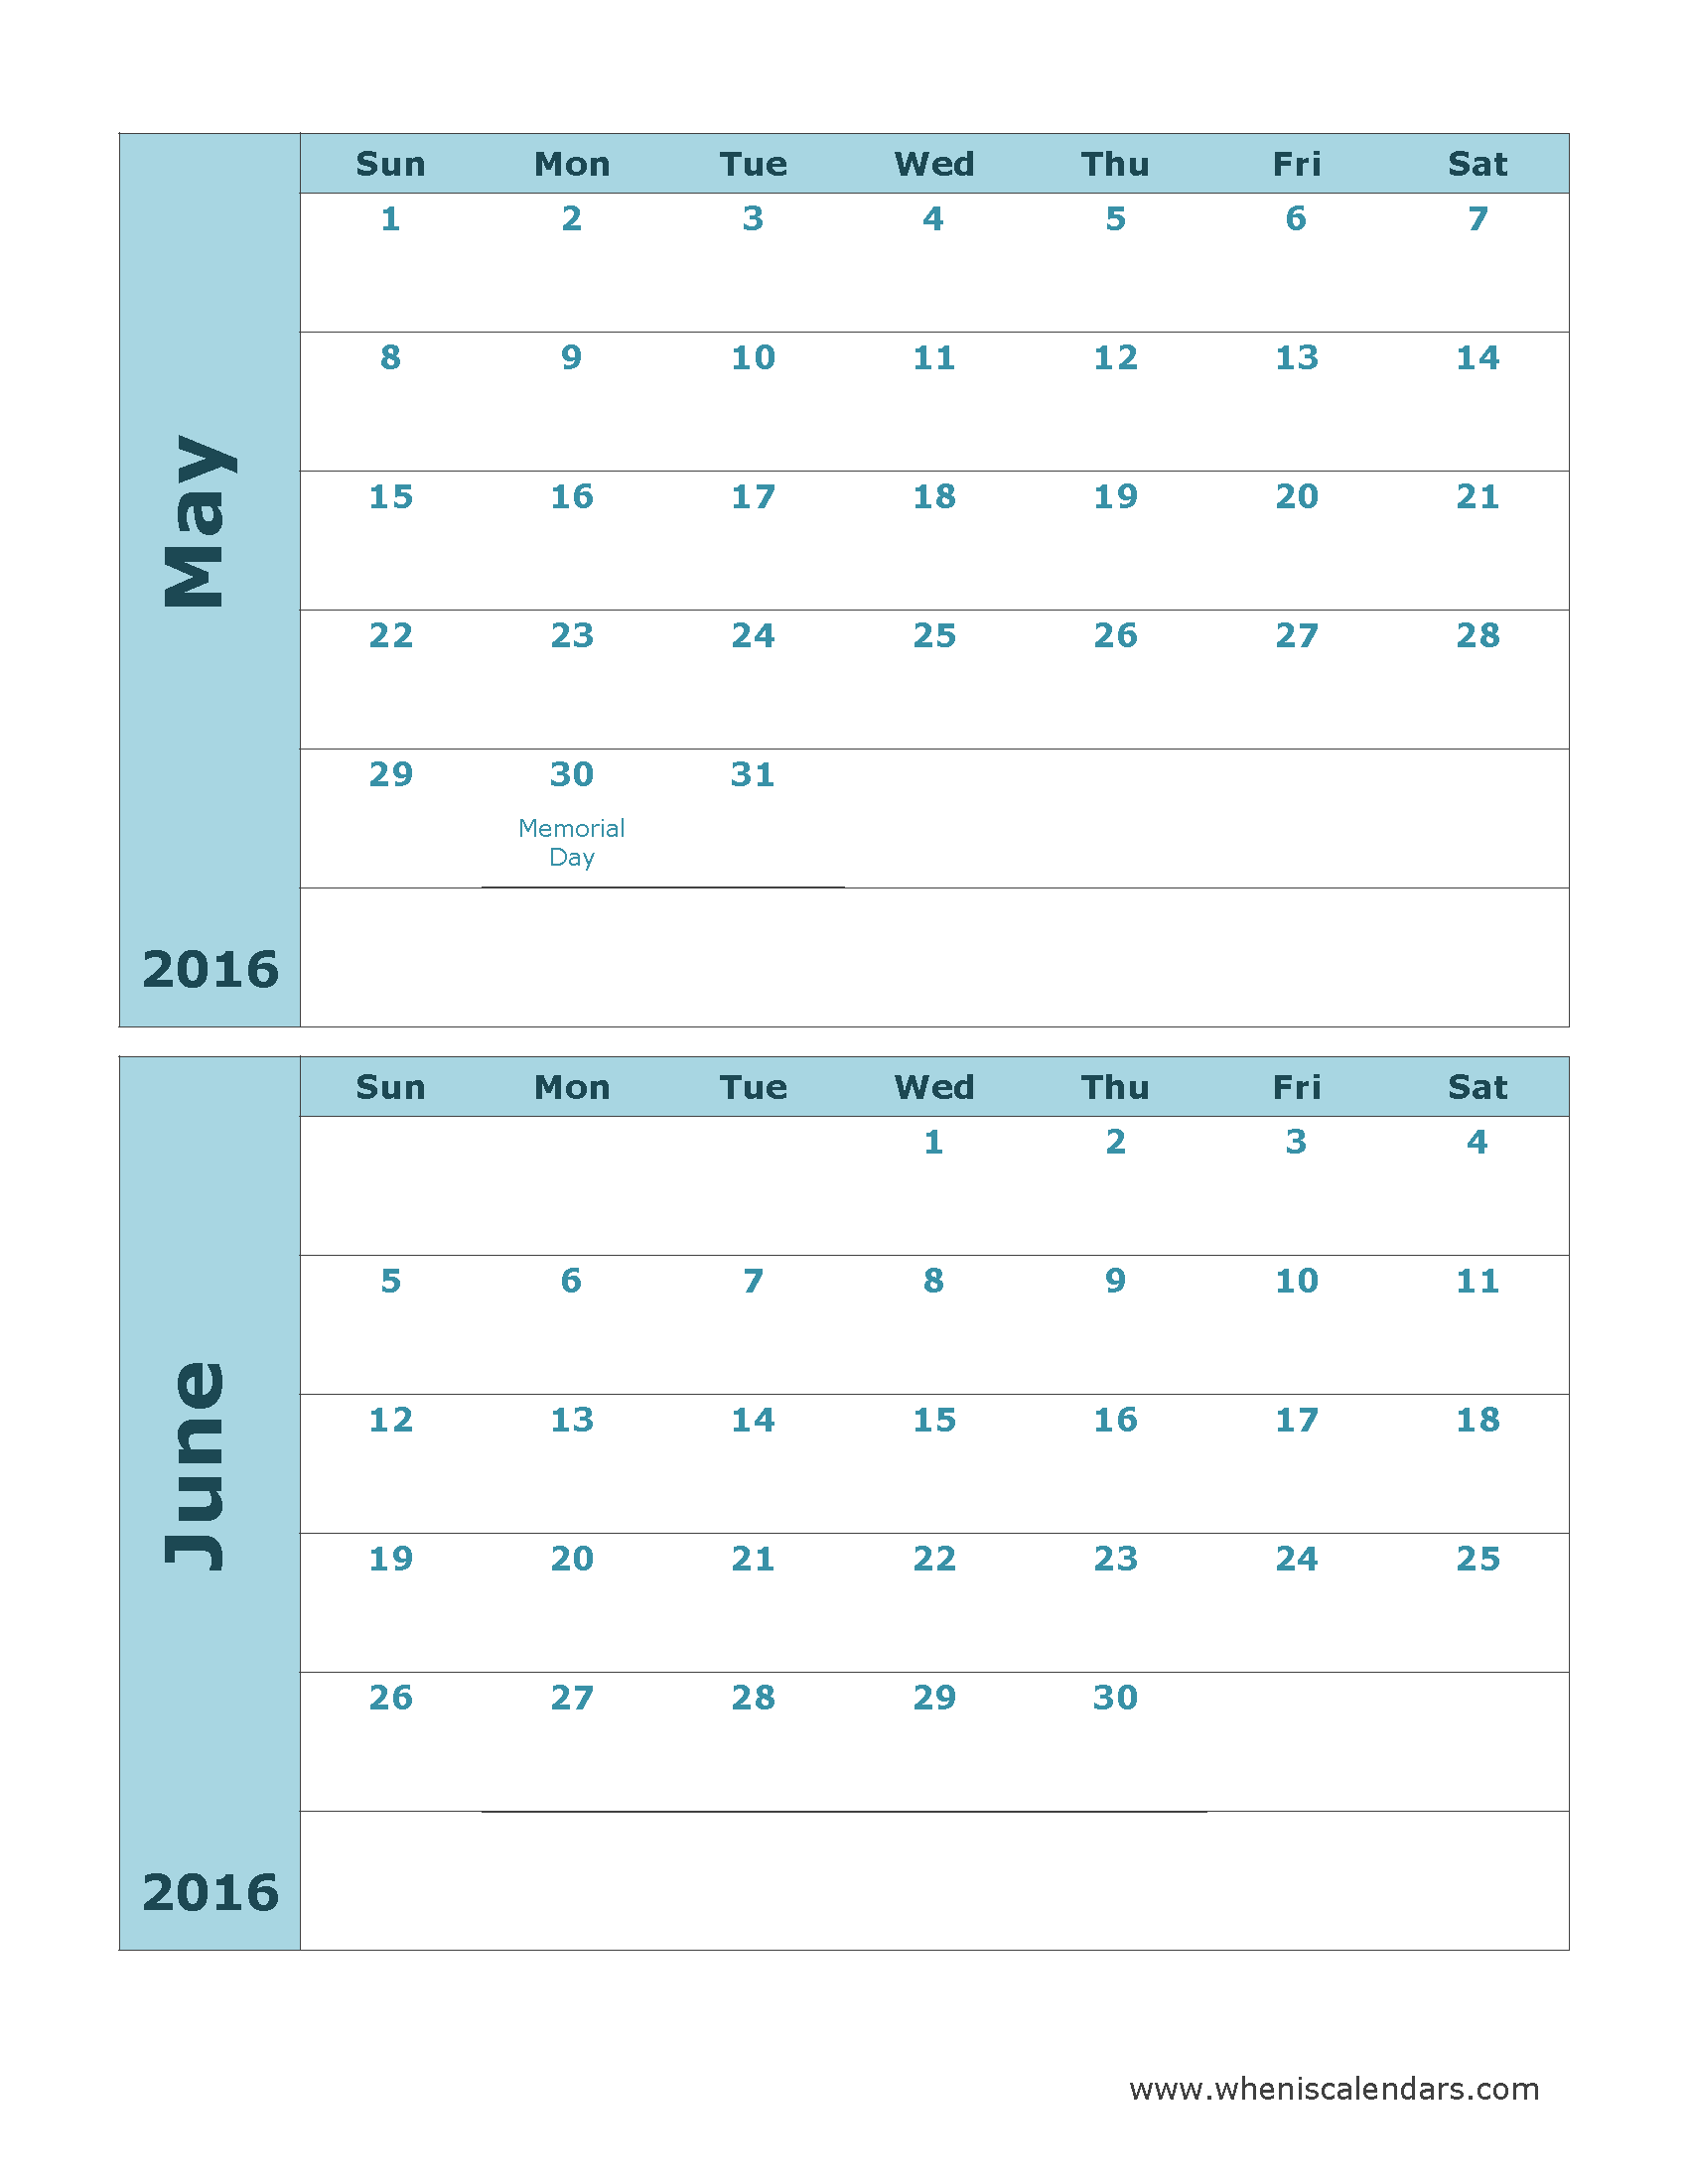 Calendar May And June Printable : Printable calendar may and june ideas for the house